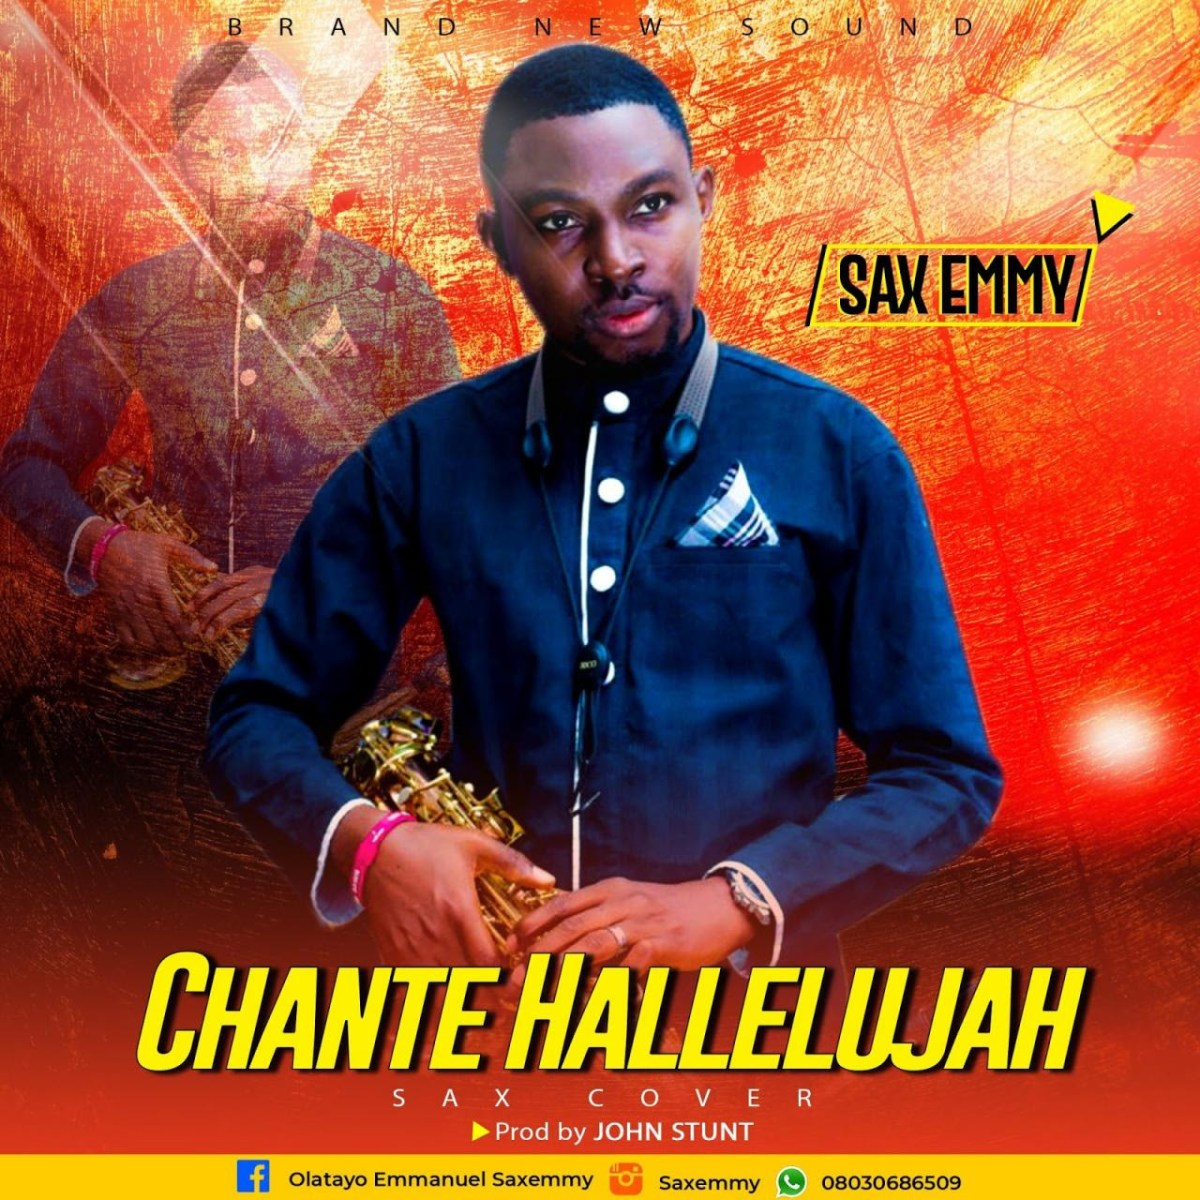 New Music : Saxemmy - Chante Hallelujah (Sax Cover) | Originally By Ajuju